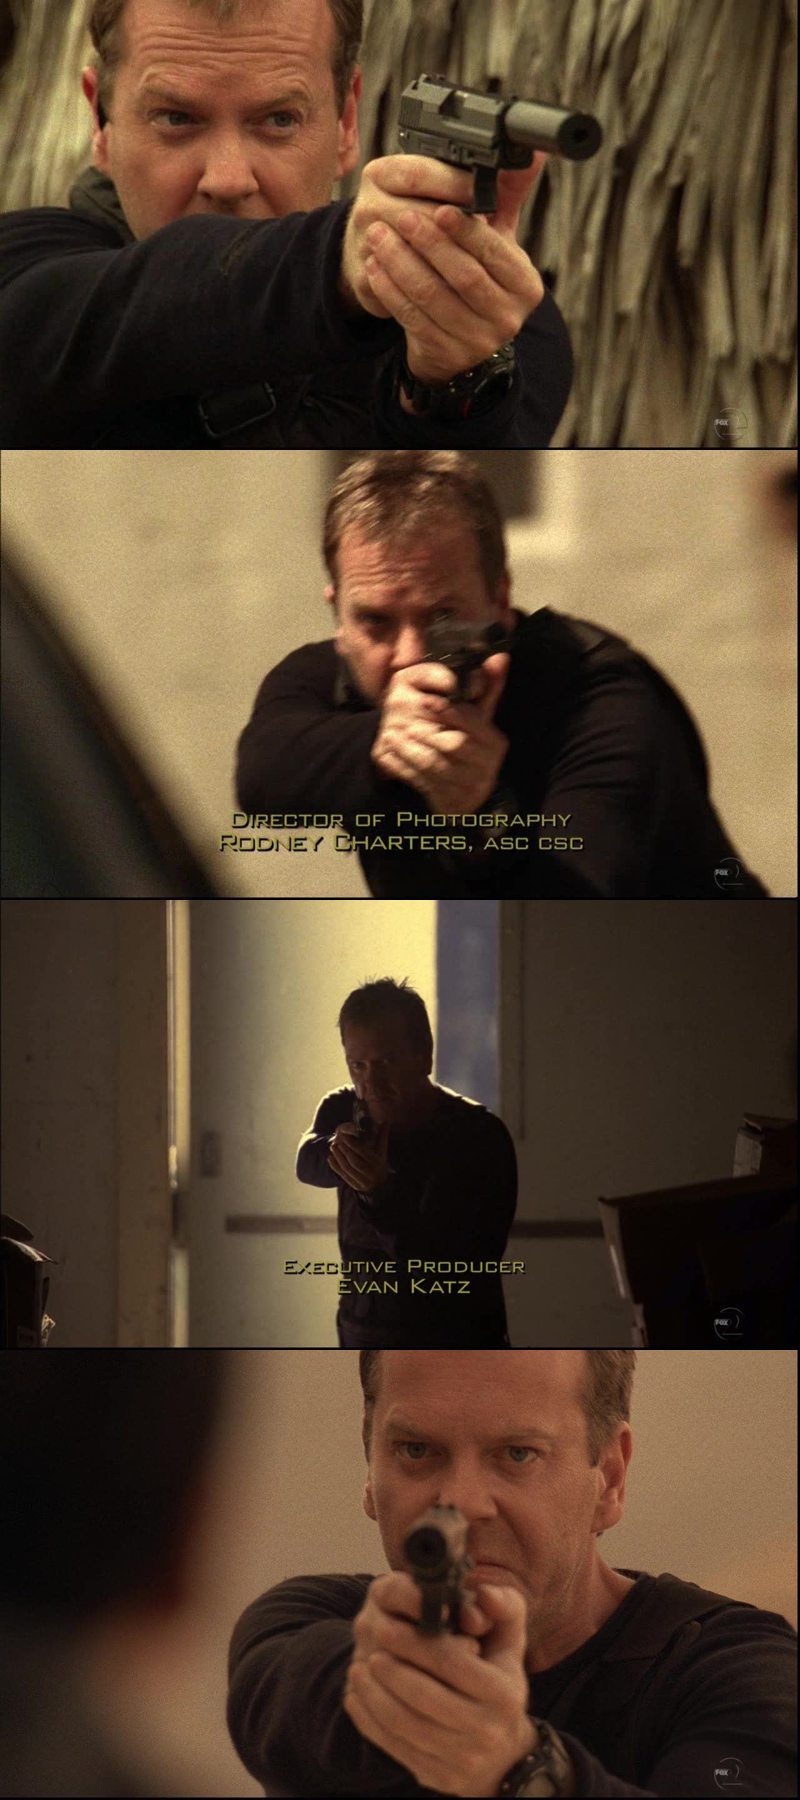 Jack Bauer is fucking awesome! When he got shot though, I held my breath for a moment there!